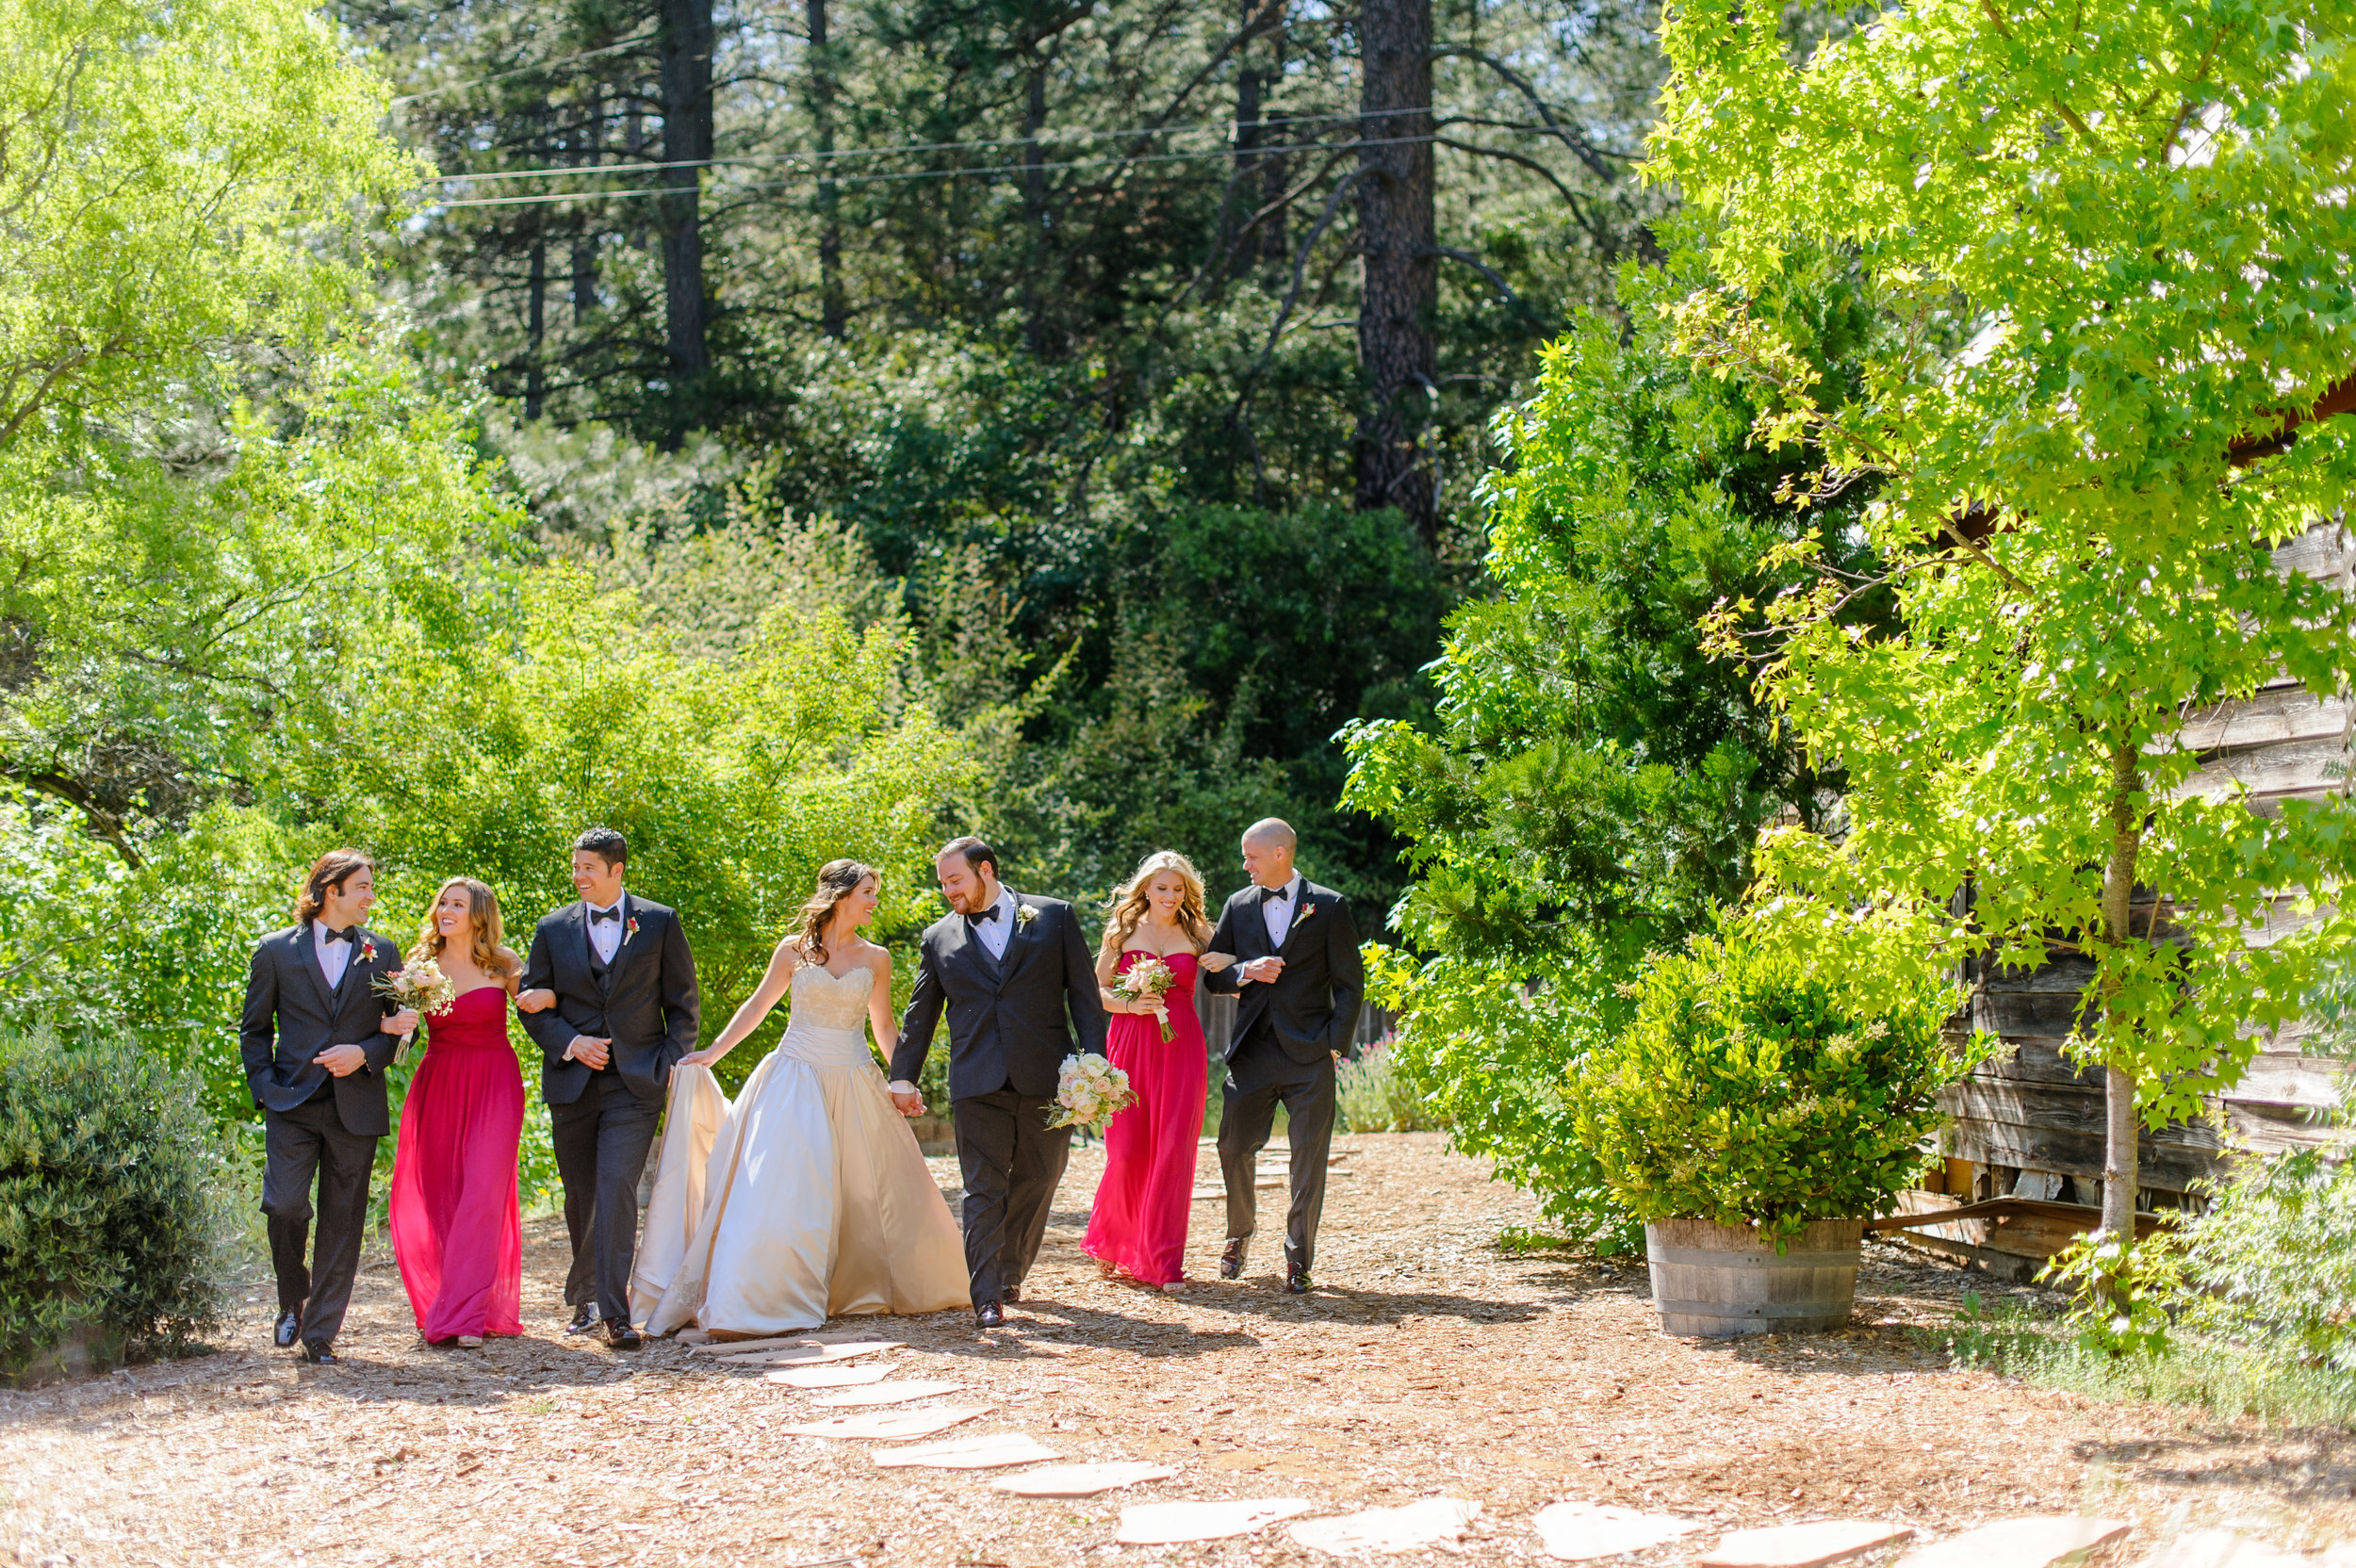 lindsey-charlie-058-monte-verde-inn-foresthill-wedding-photographer-katherine-nicole-photography.JPG